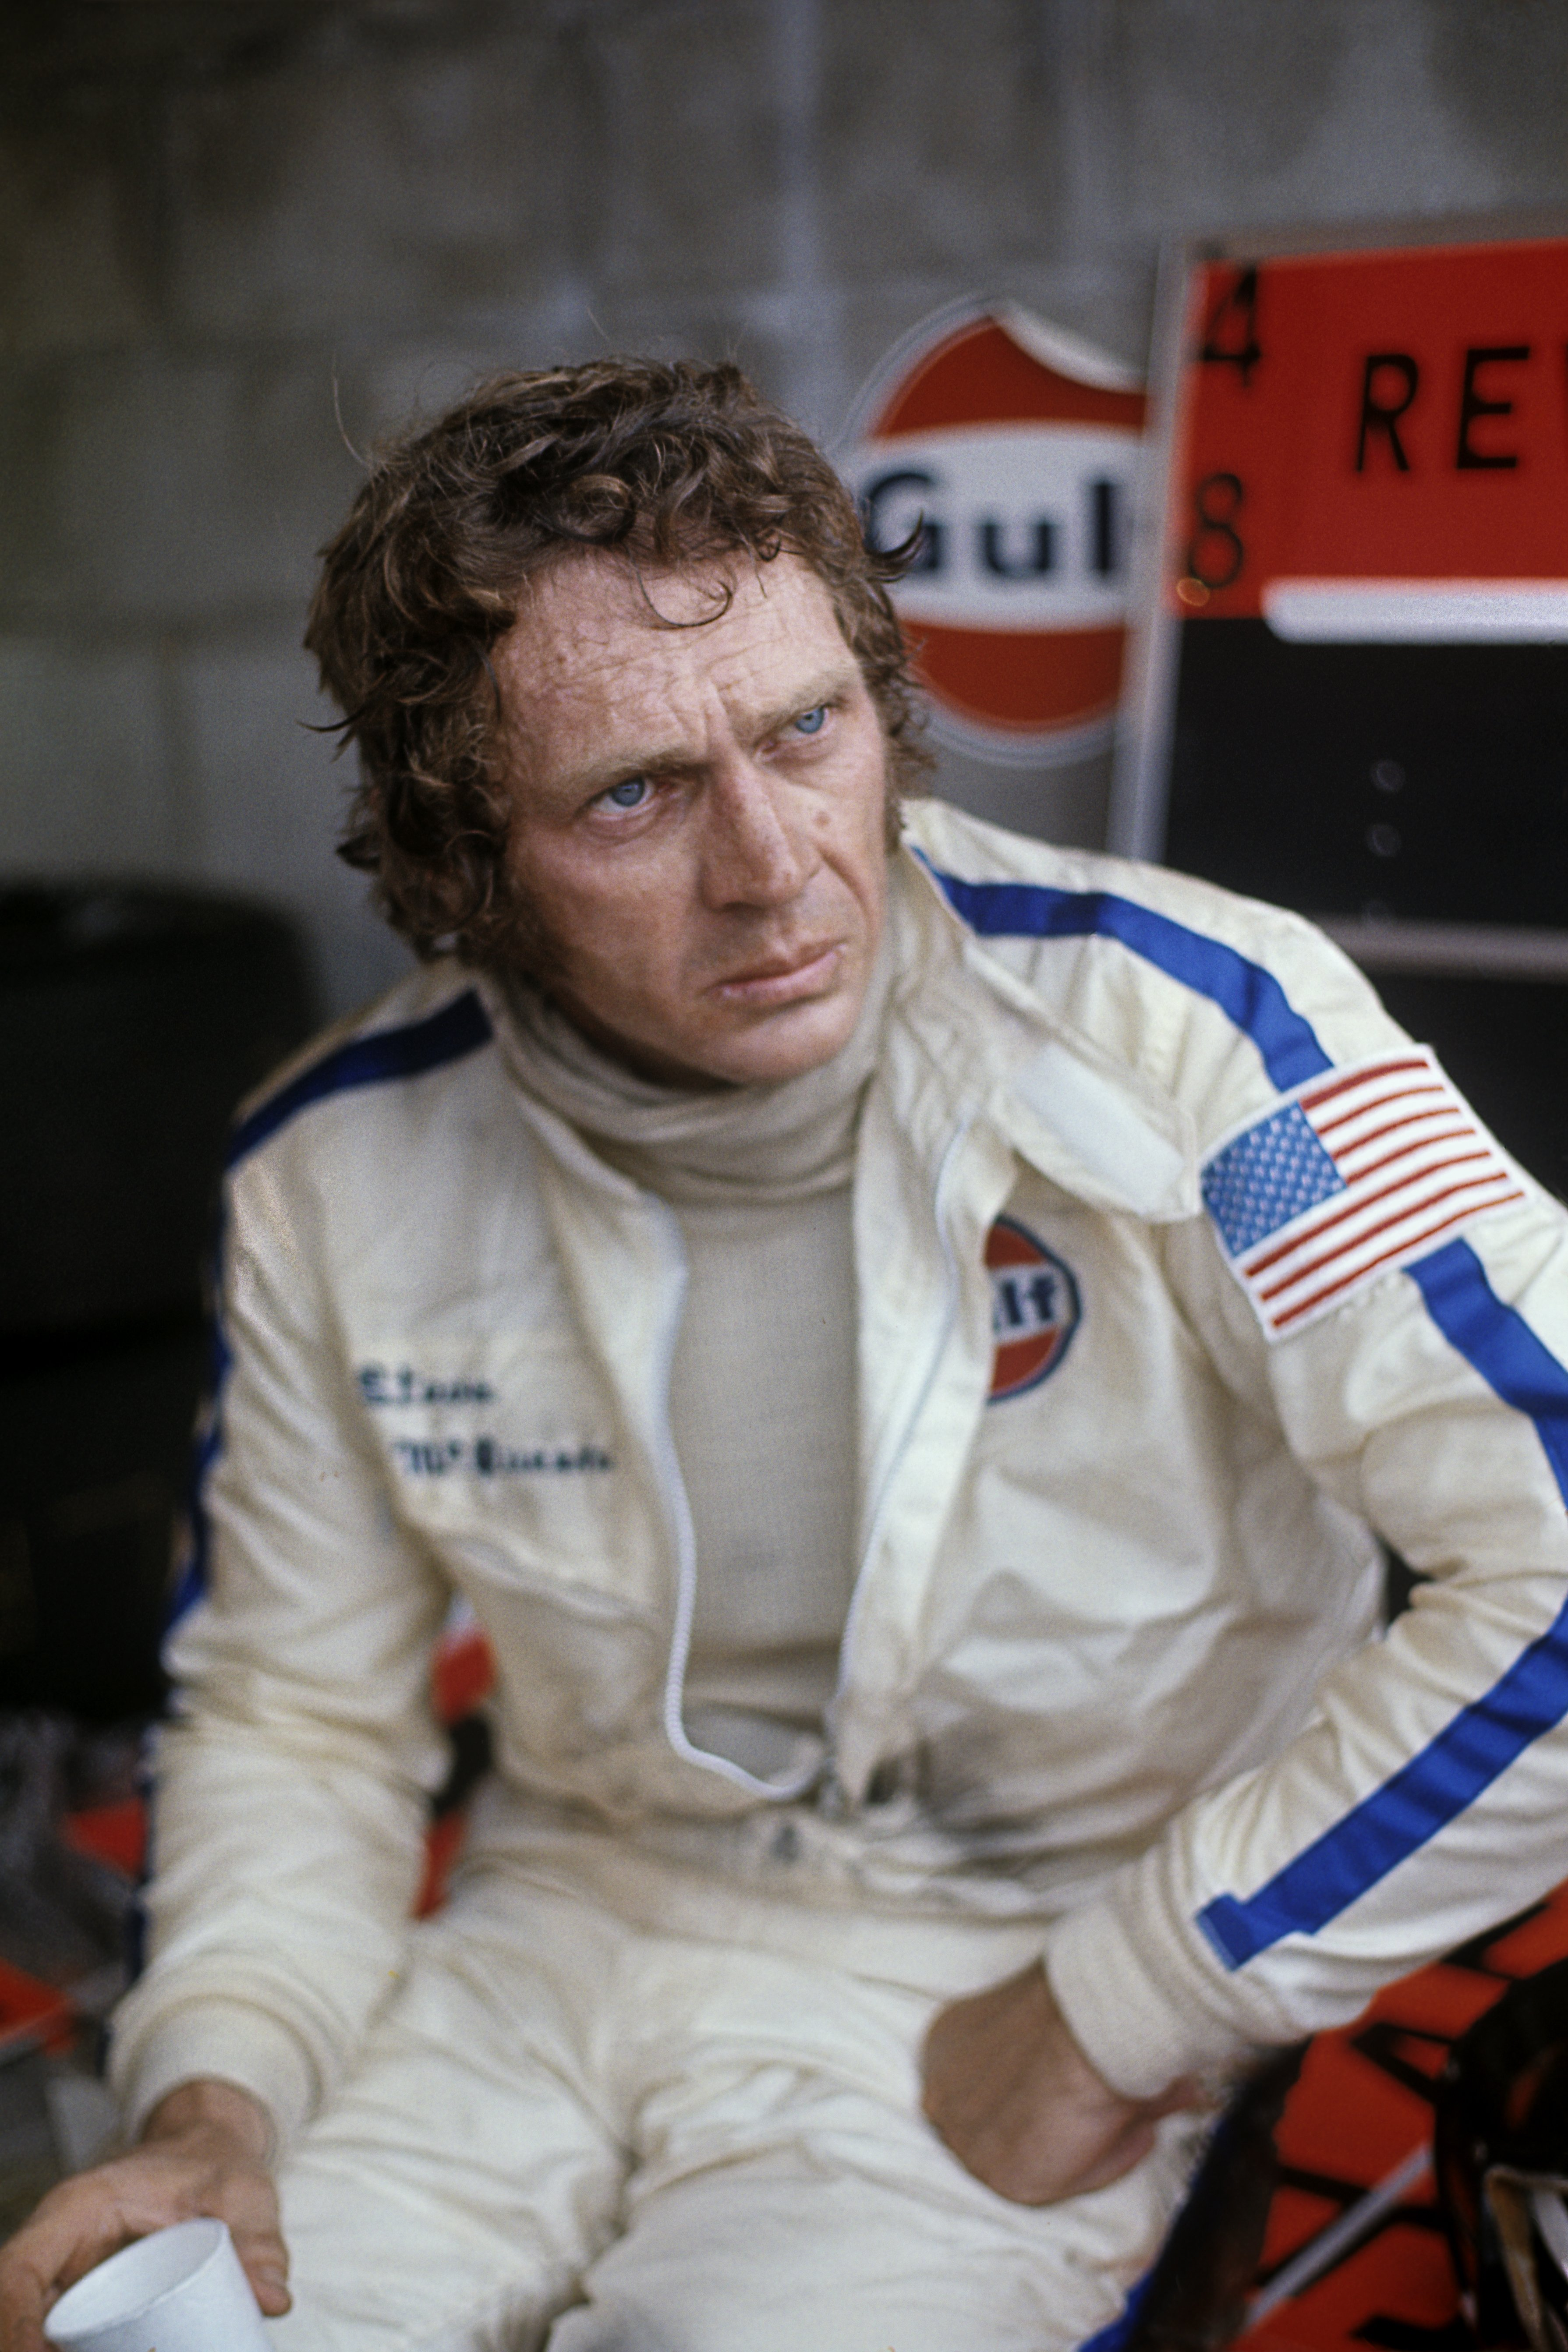 Steve McQueen poses during 12 Hours of Sebring race in 1970 | Photo: Getty Images